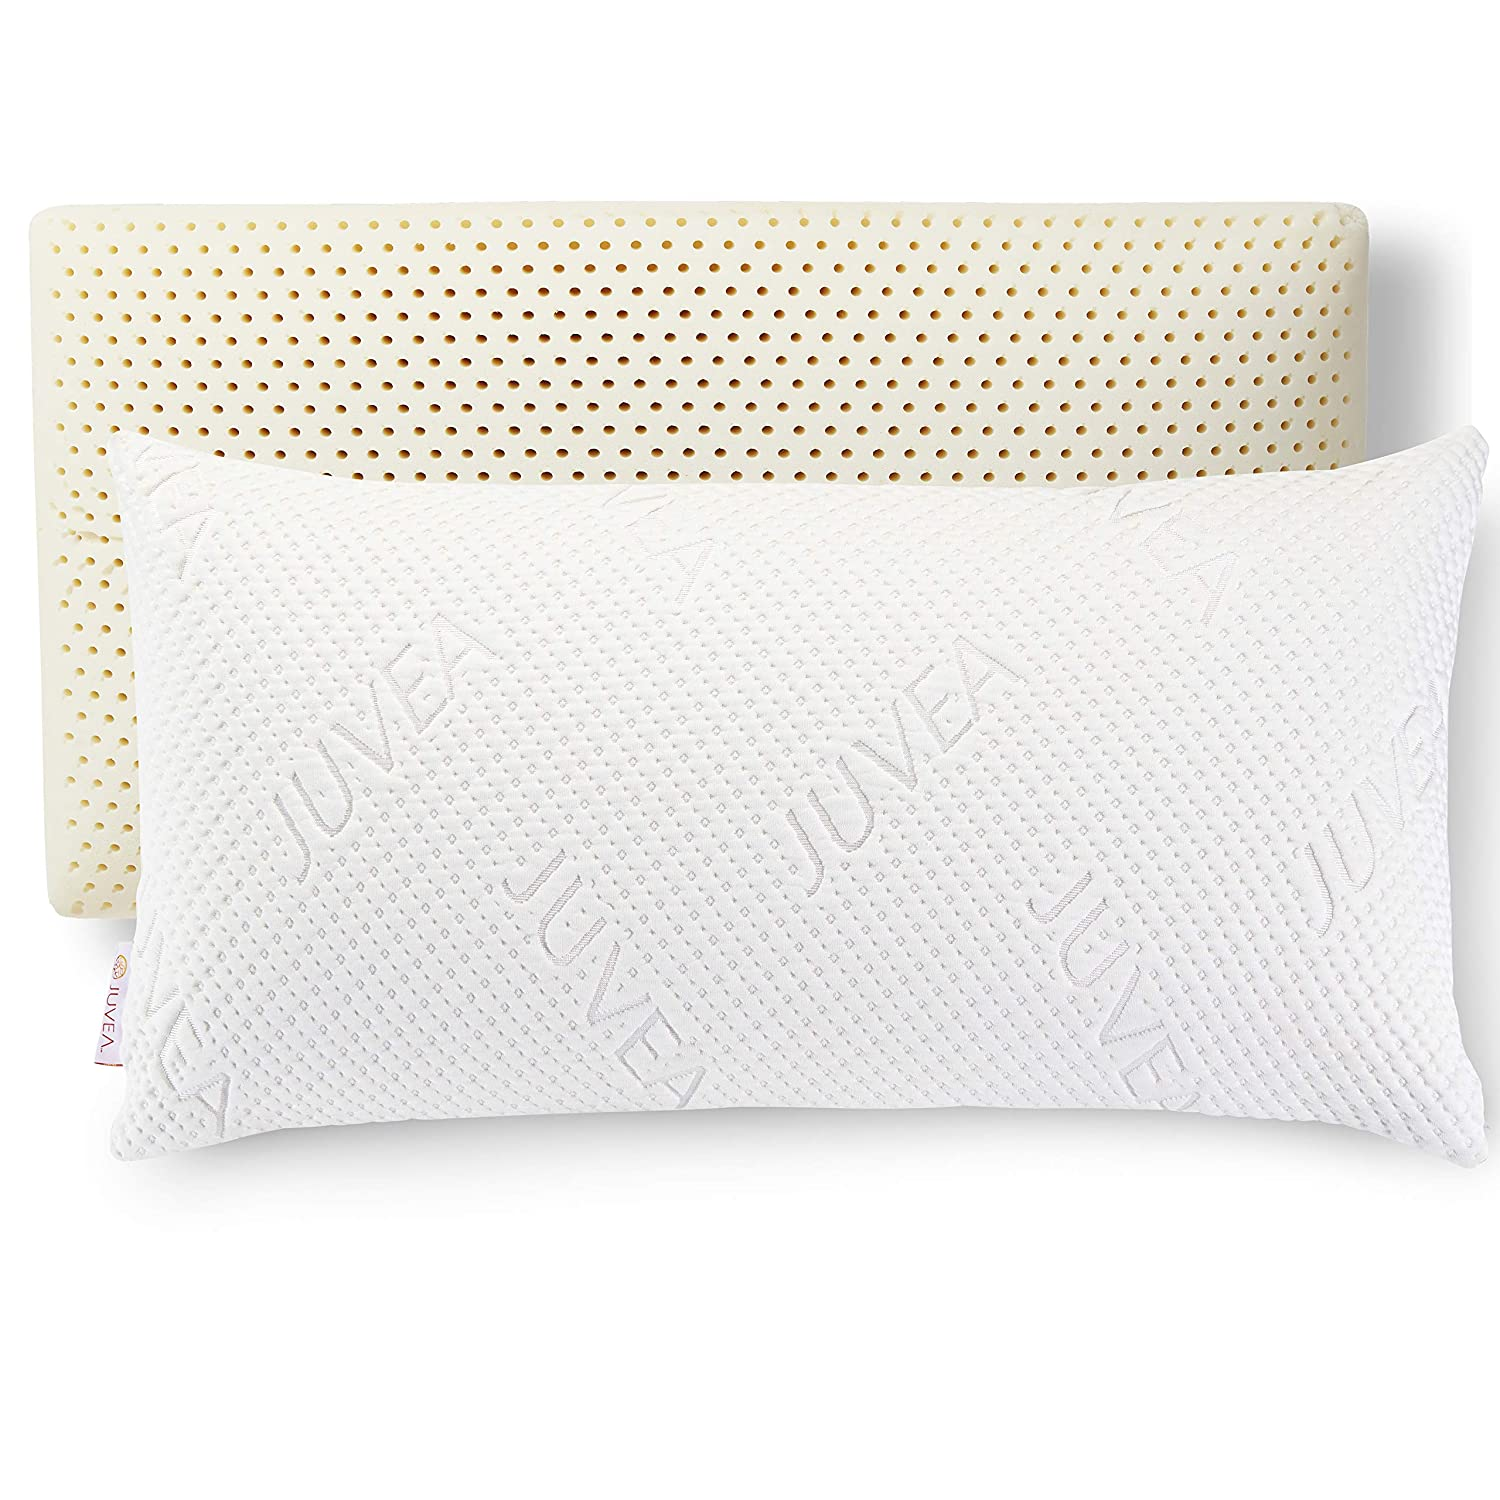 JUVEA 100% Natural, Talalay Latex Pillow, Ultra-Soft Luxurious Tencel Lyocell Brand Cover, Best Pillow to Support Head and Neck, King High Profile, Ideal for Side and Back Sleepers – Made in USA